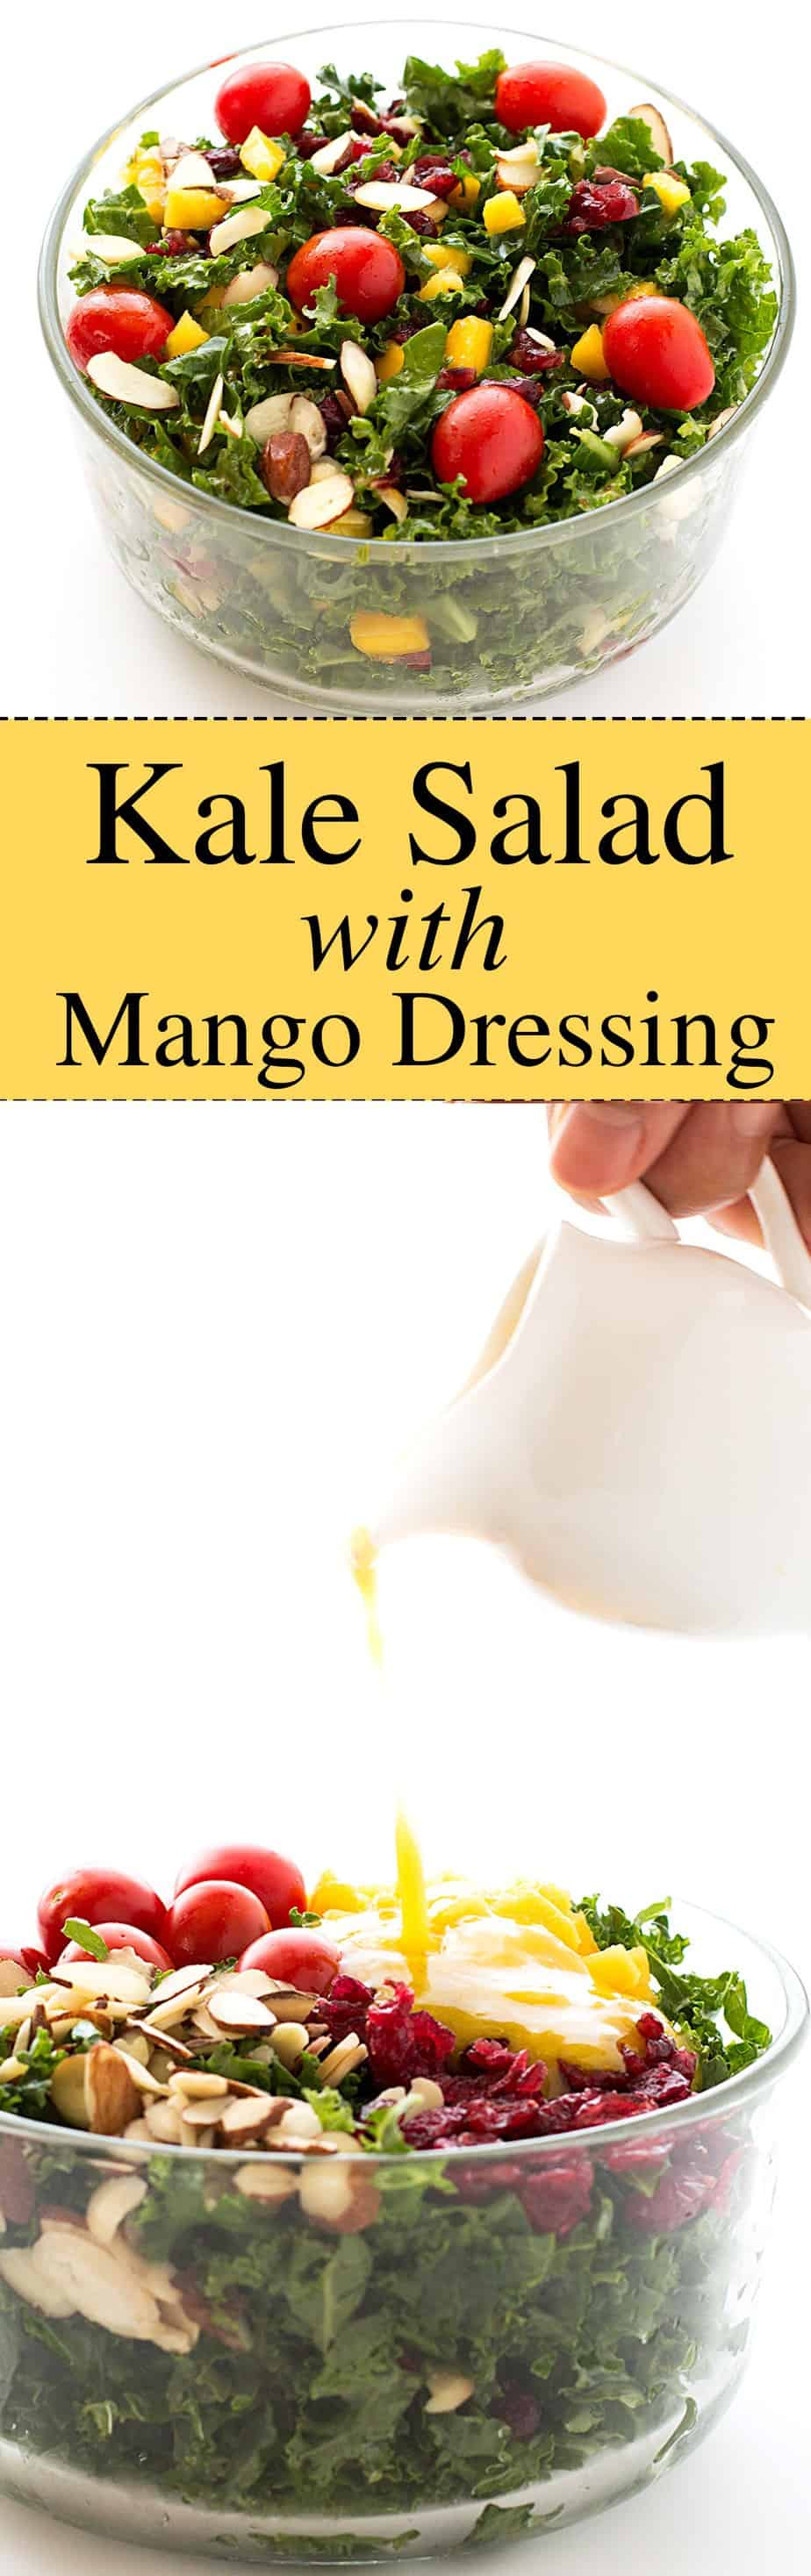 kale salad recipe with homemade mango dressing,. Superfoods salad with no sugar added salad dressing. Tangy and Sweet. Easy salad recipe that can be ready within 10 minutes.